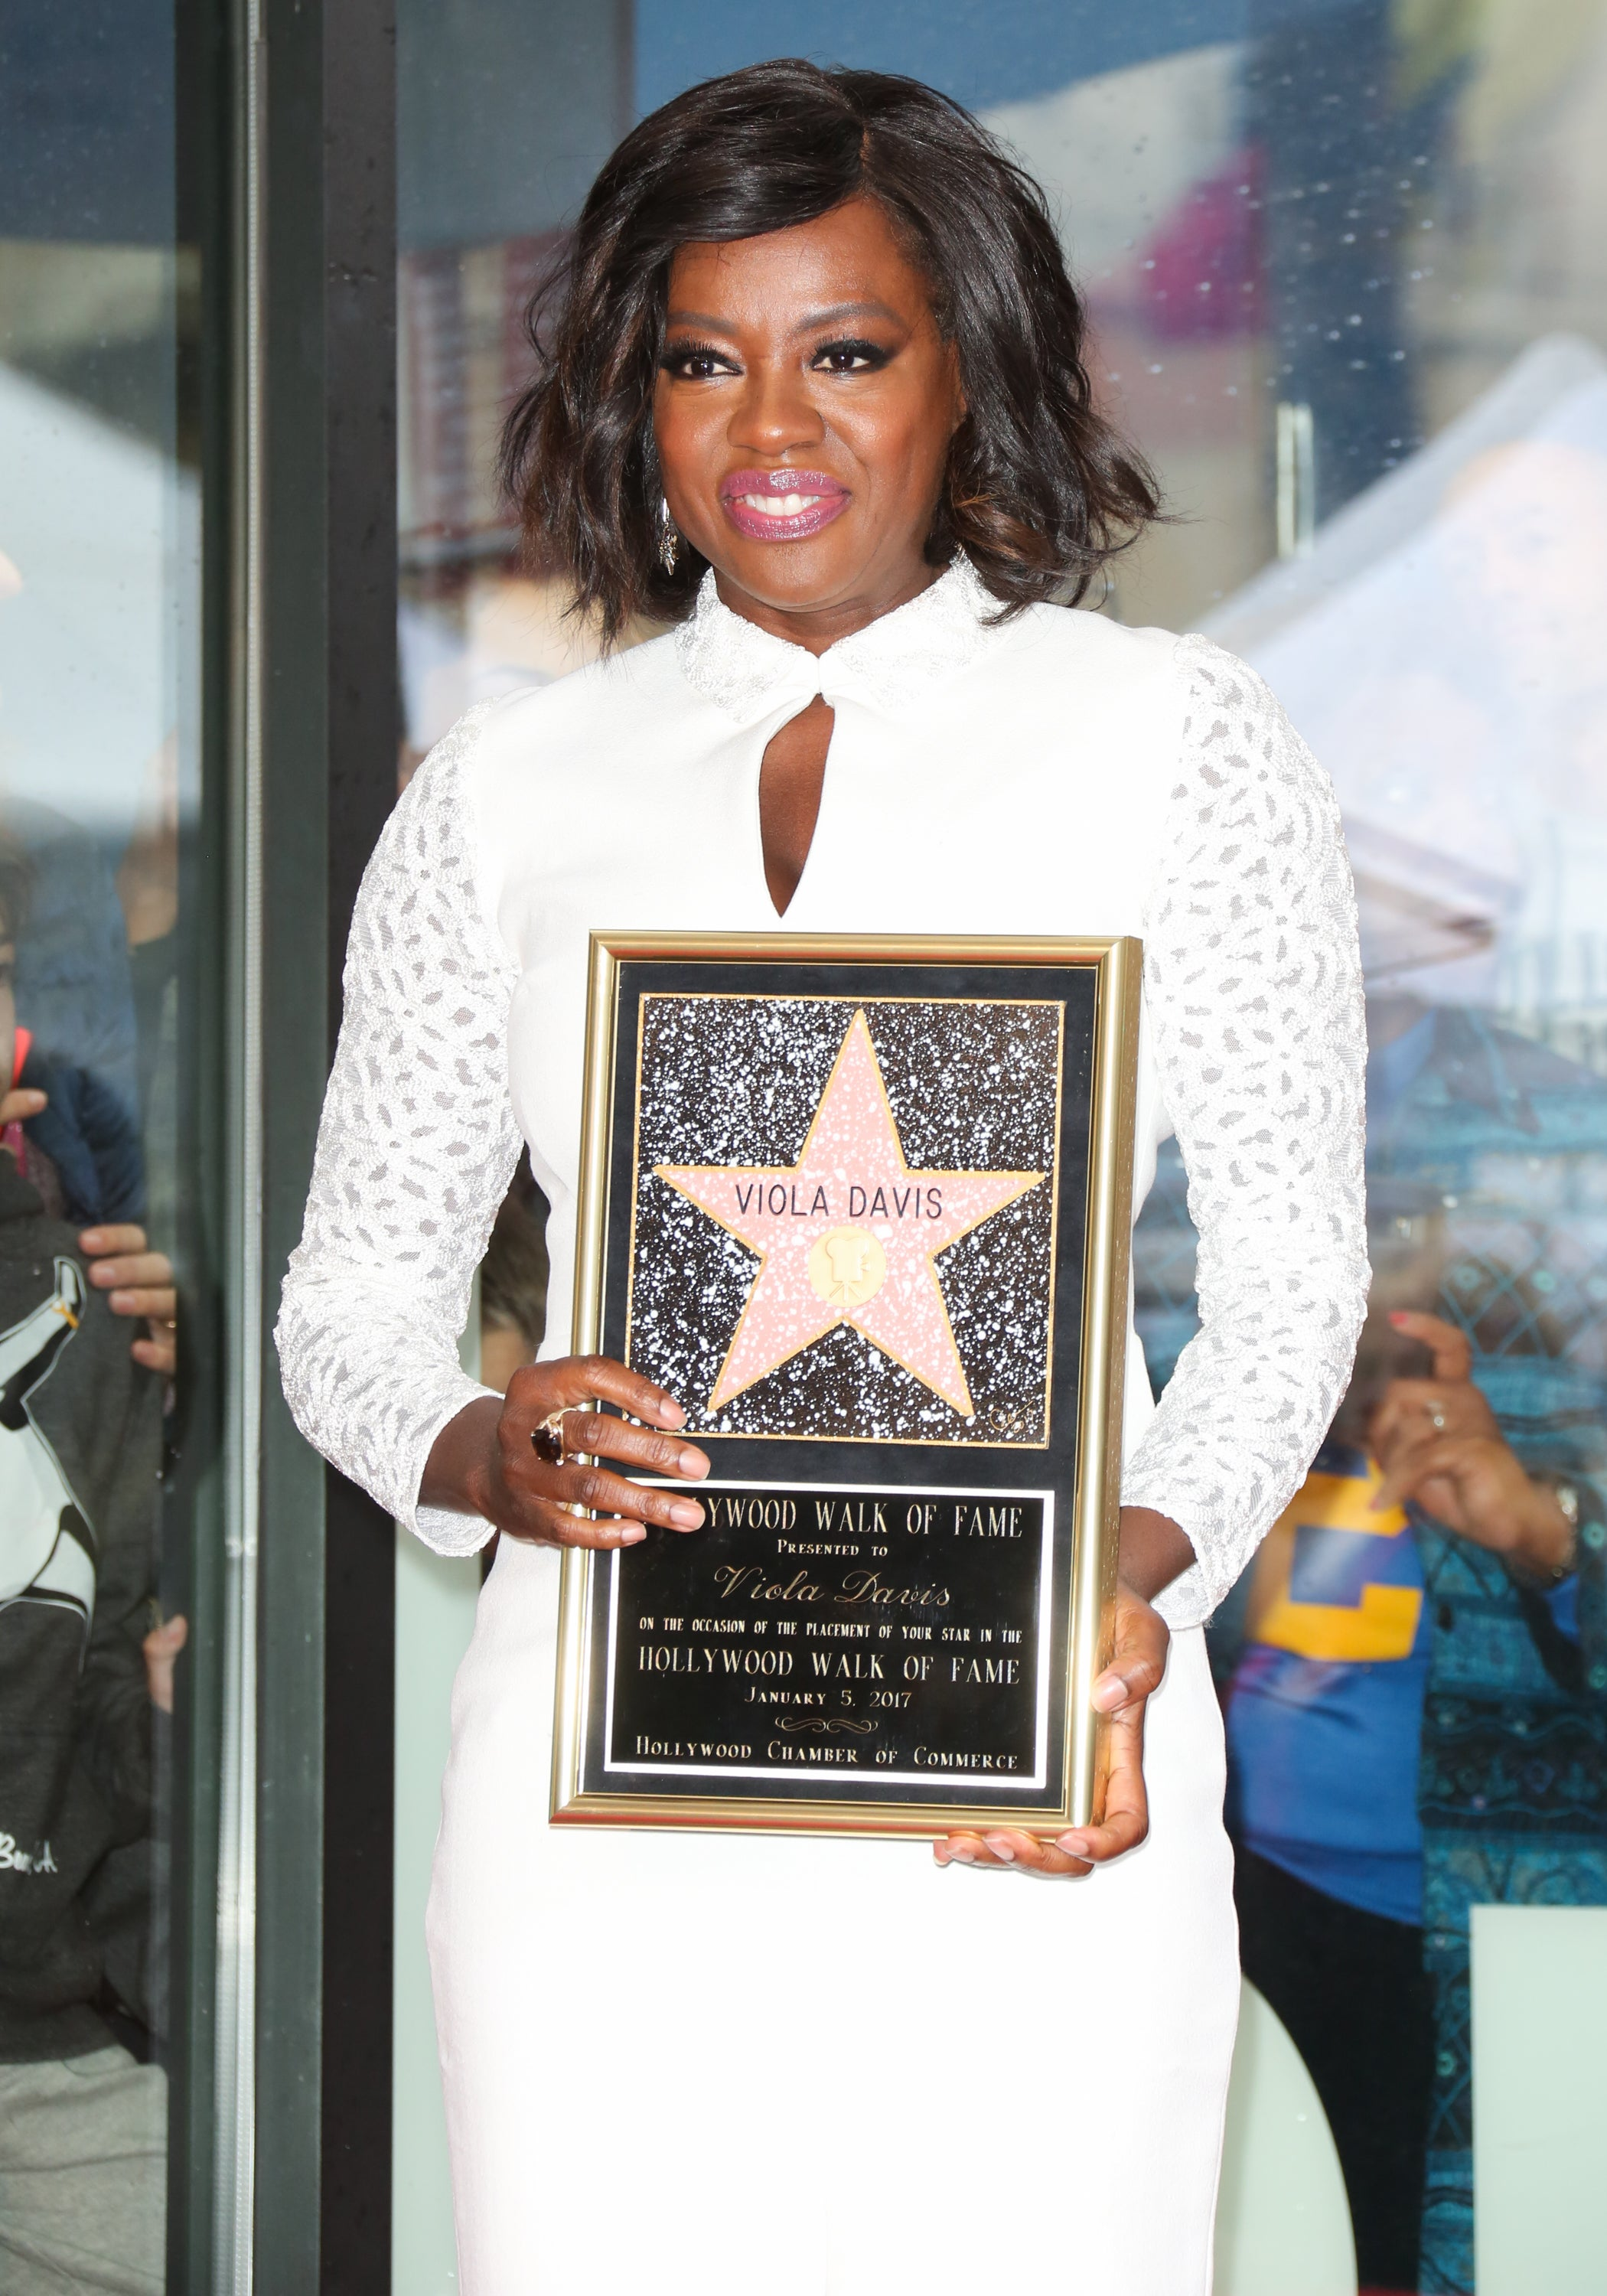 Viola Davis Got a Star on the Hollywood Walk of Fame